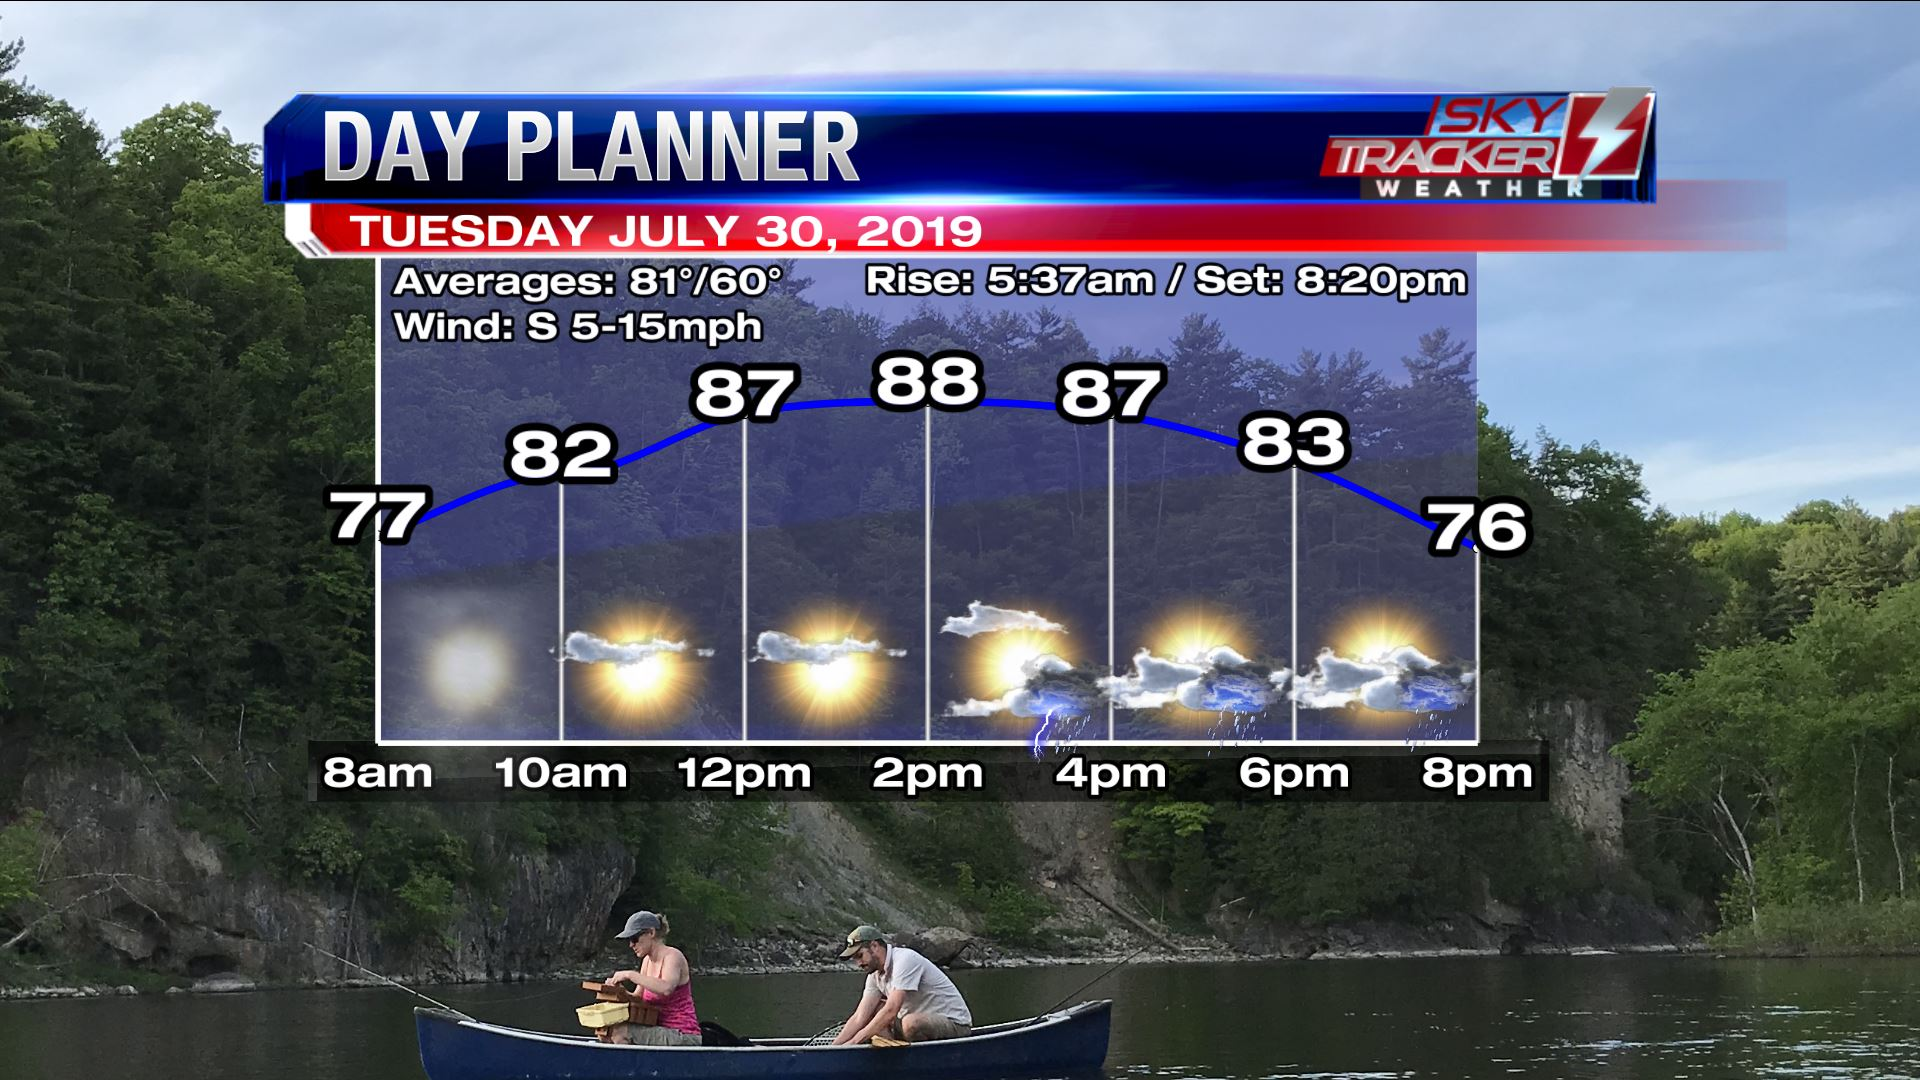 Planner for Tuesday July 30 2019